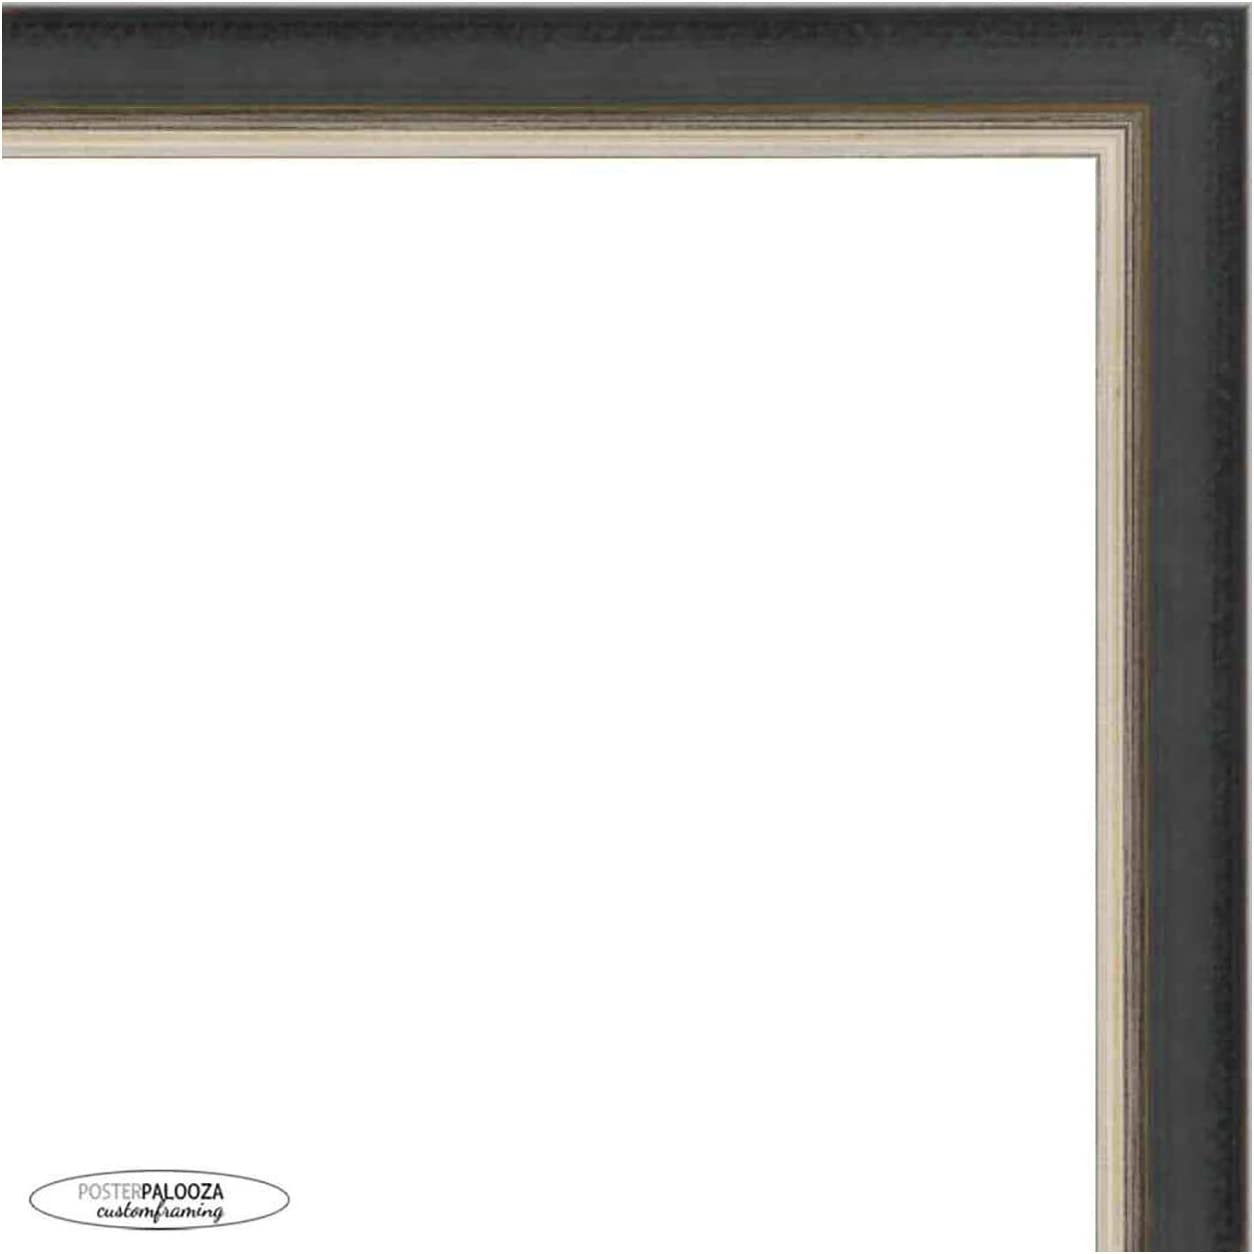 2021 autumn and winter new Poster Palooza 26x20 Traditional Complete wit Picture Recommendation Frame Wood